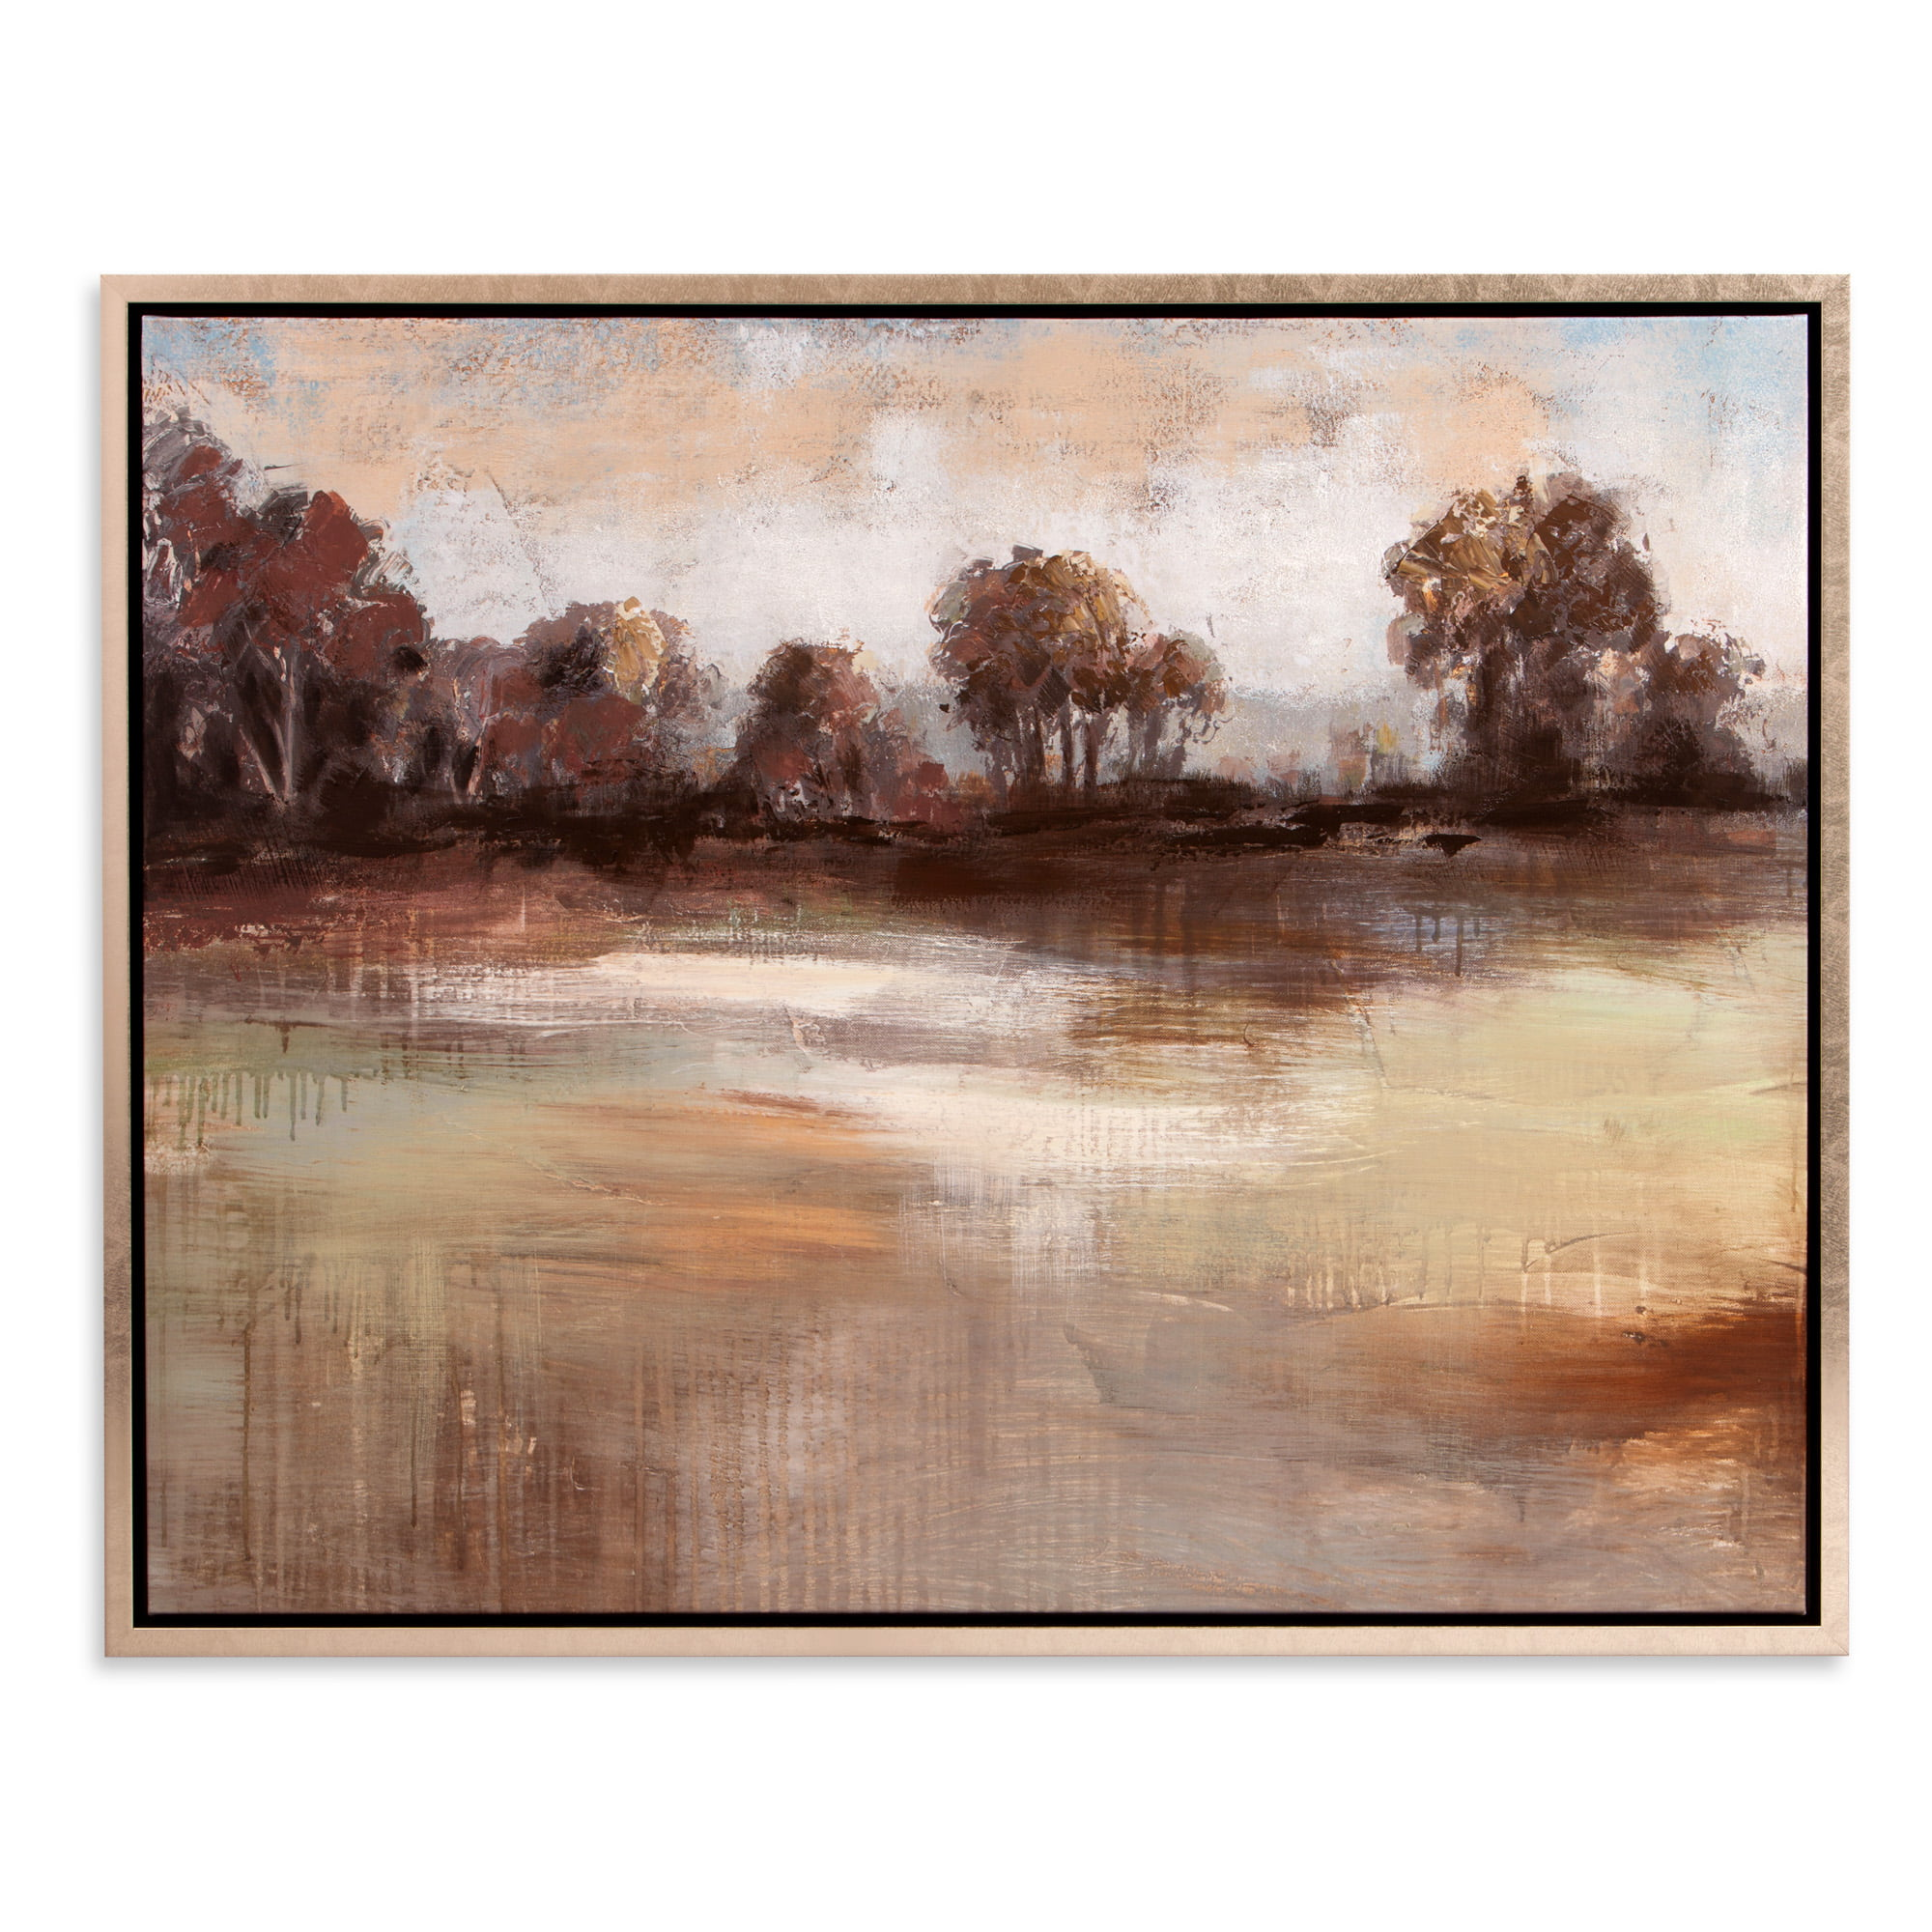 Patton Wall Decor Pastoral Landscape Framed Canvas Art by Patton Wall Decor